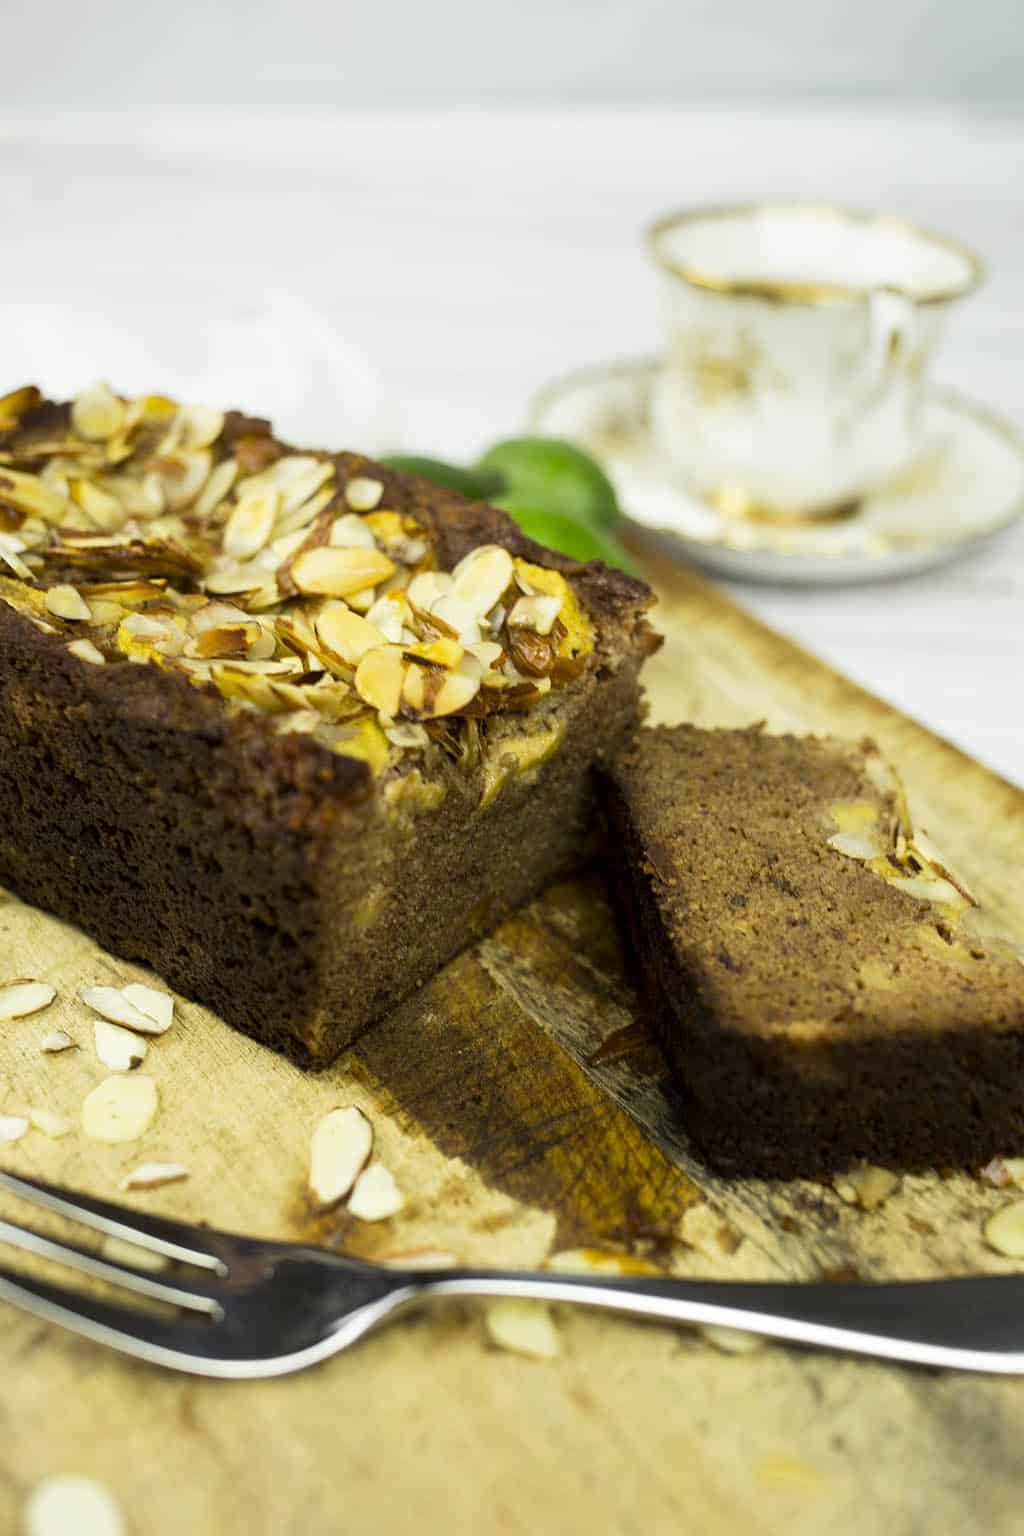 Feijoa and Banana Bread with slice cut and cup of tea